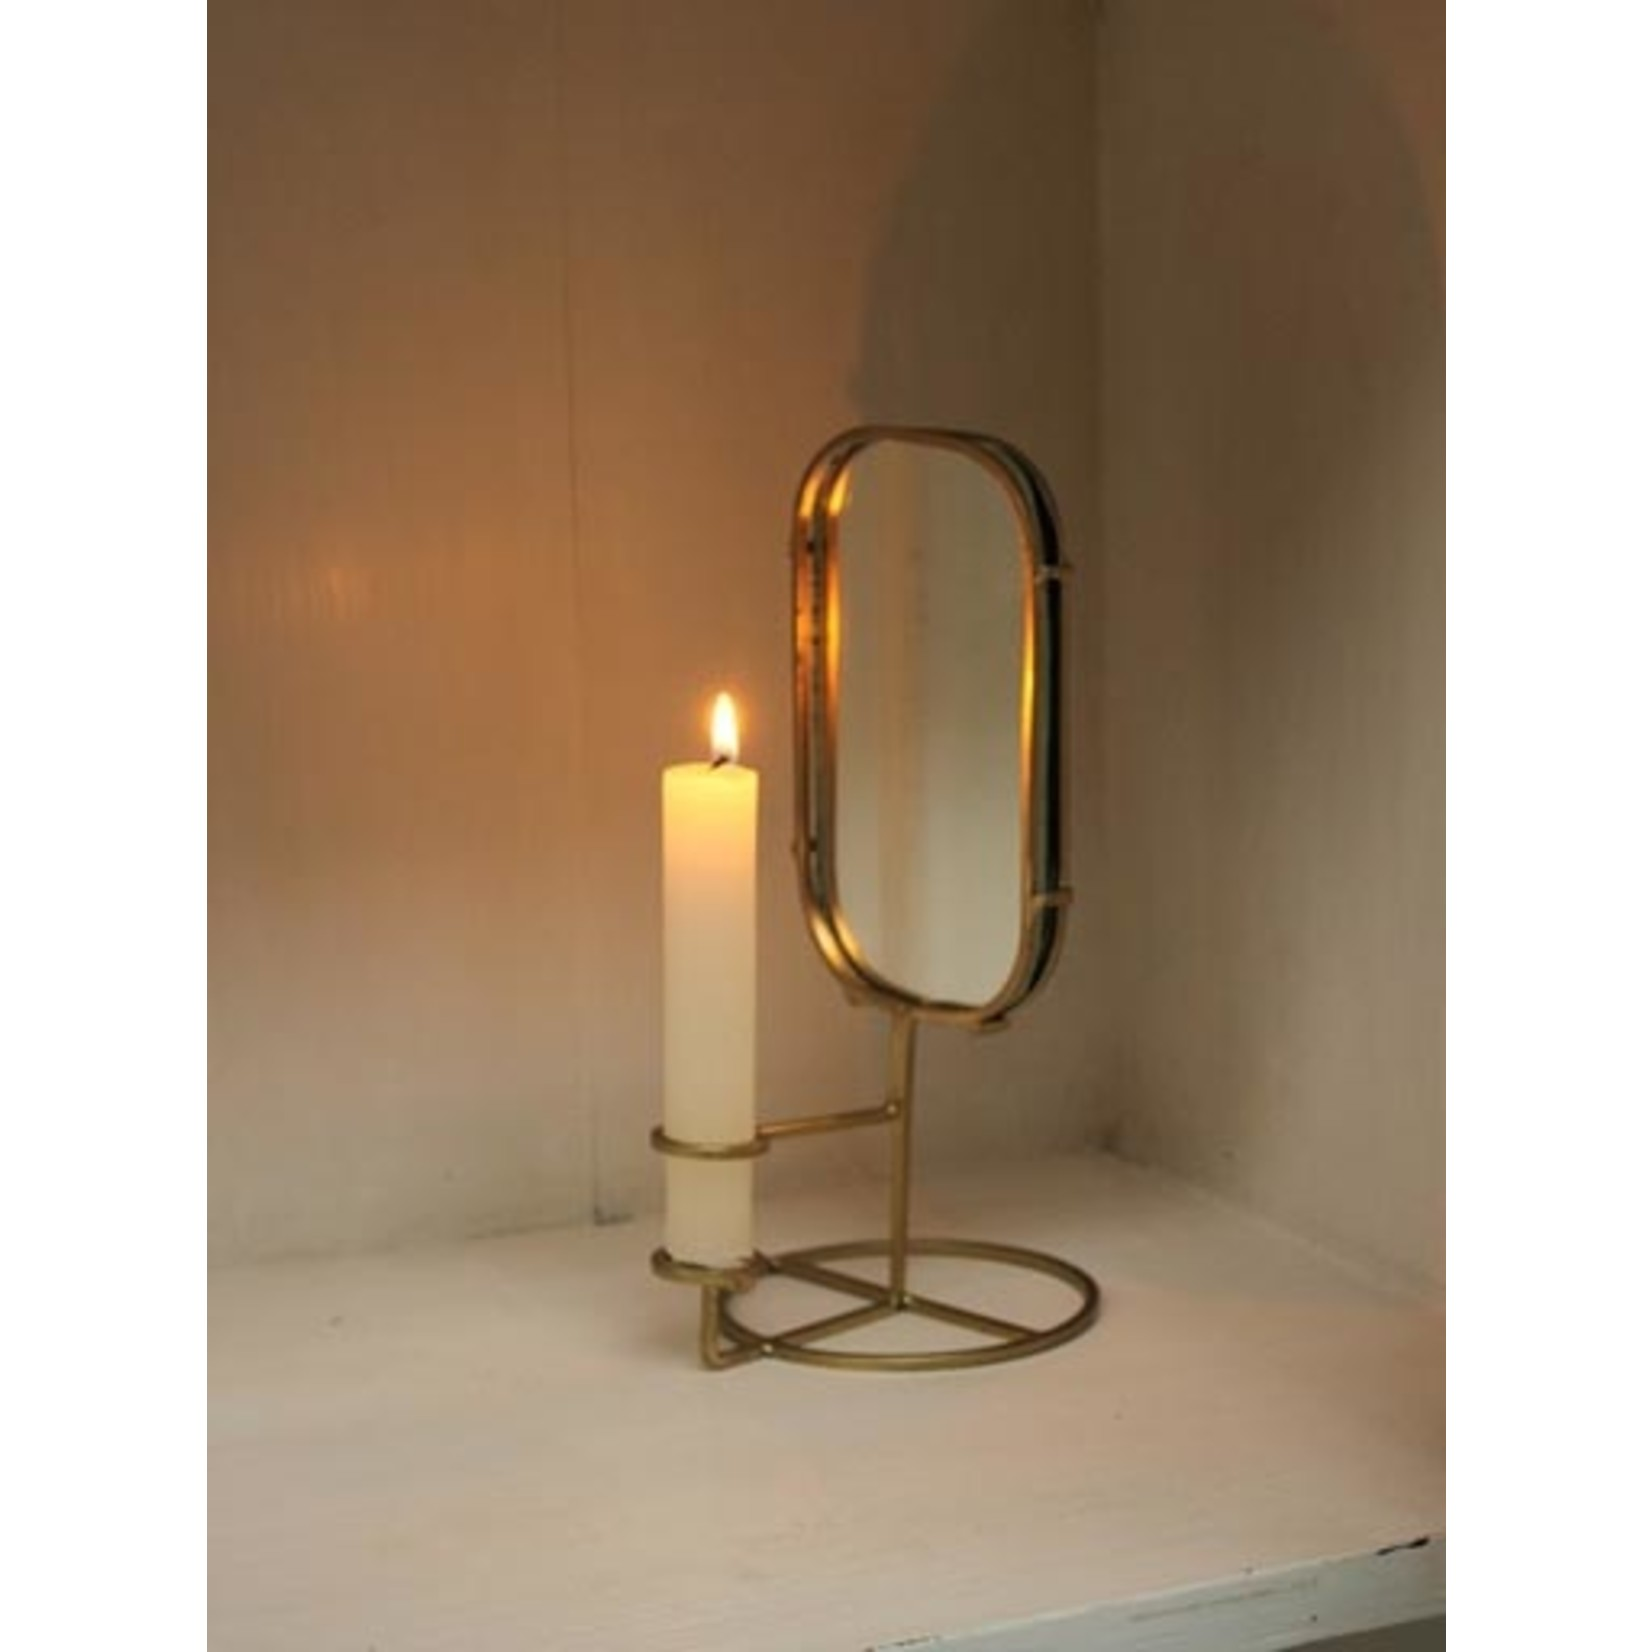 CHEHOMA RING CANDLE HOLDER AND MIRROR